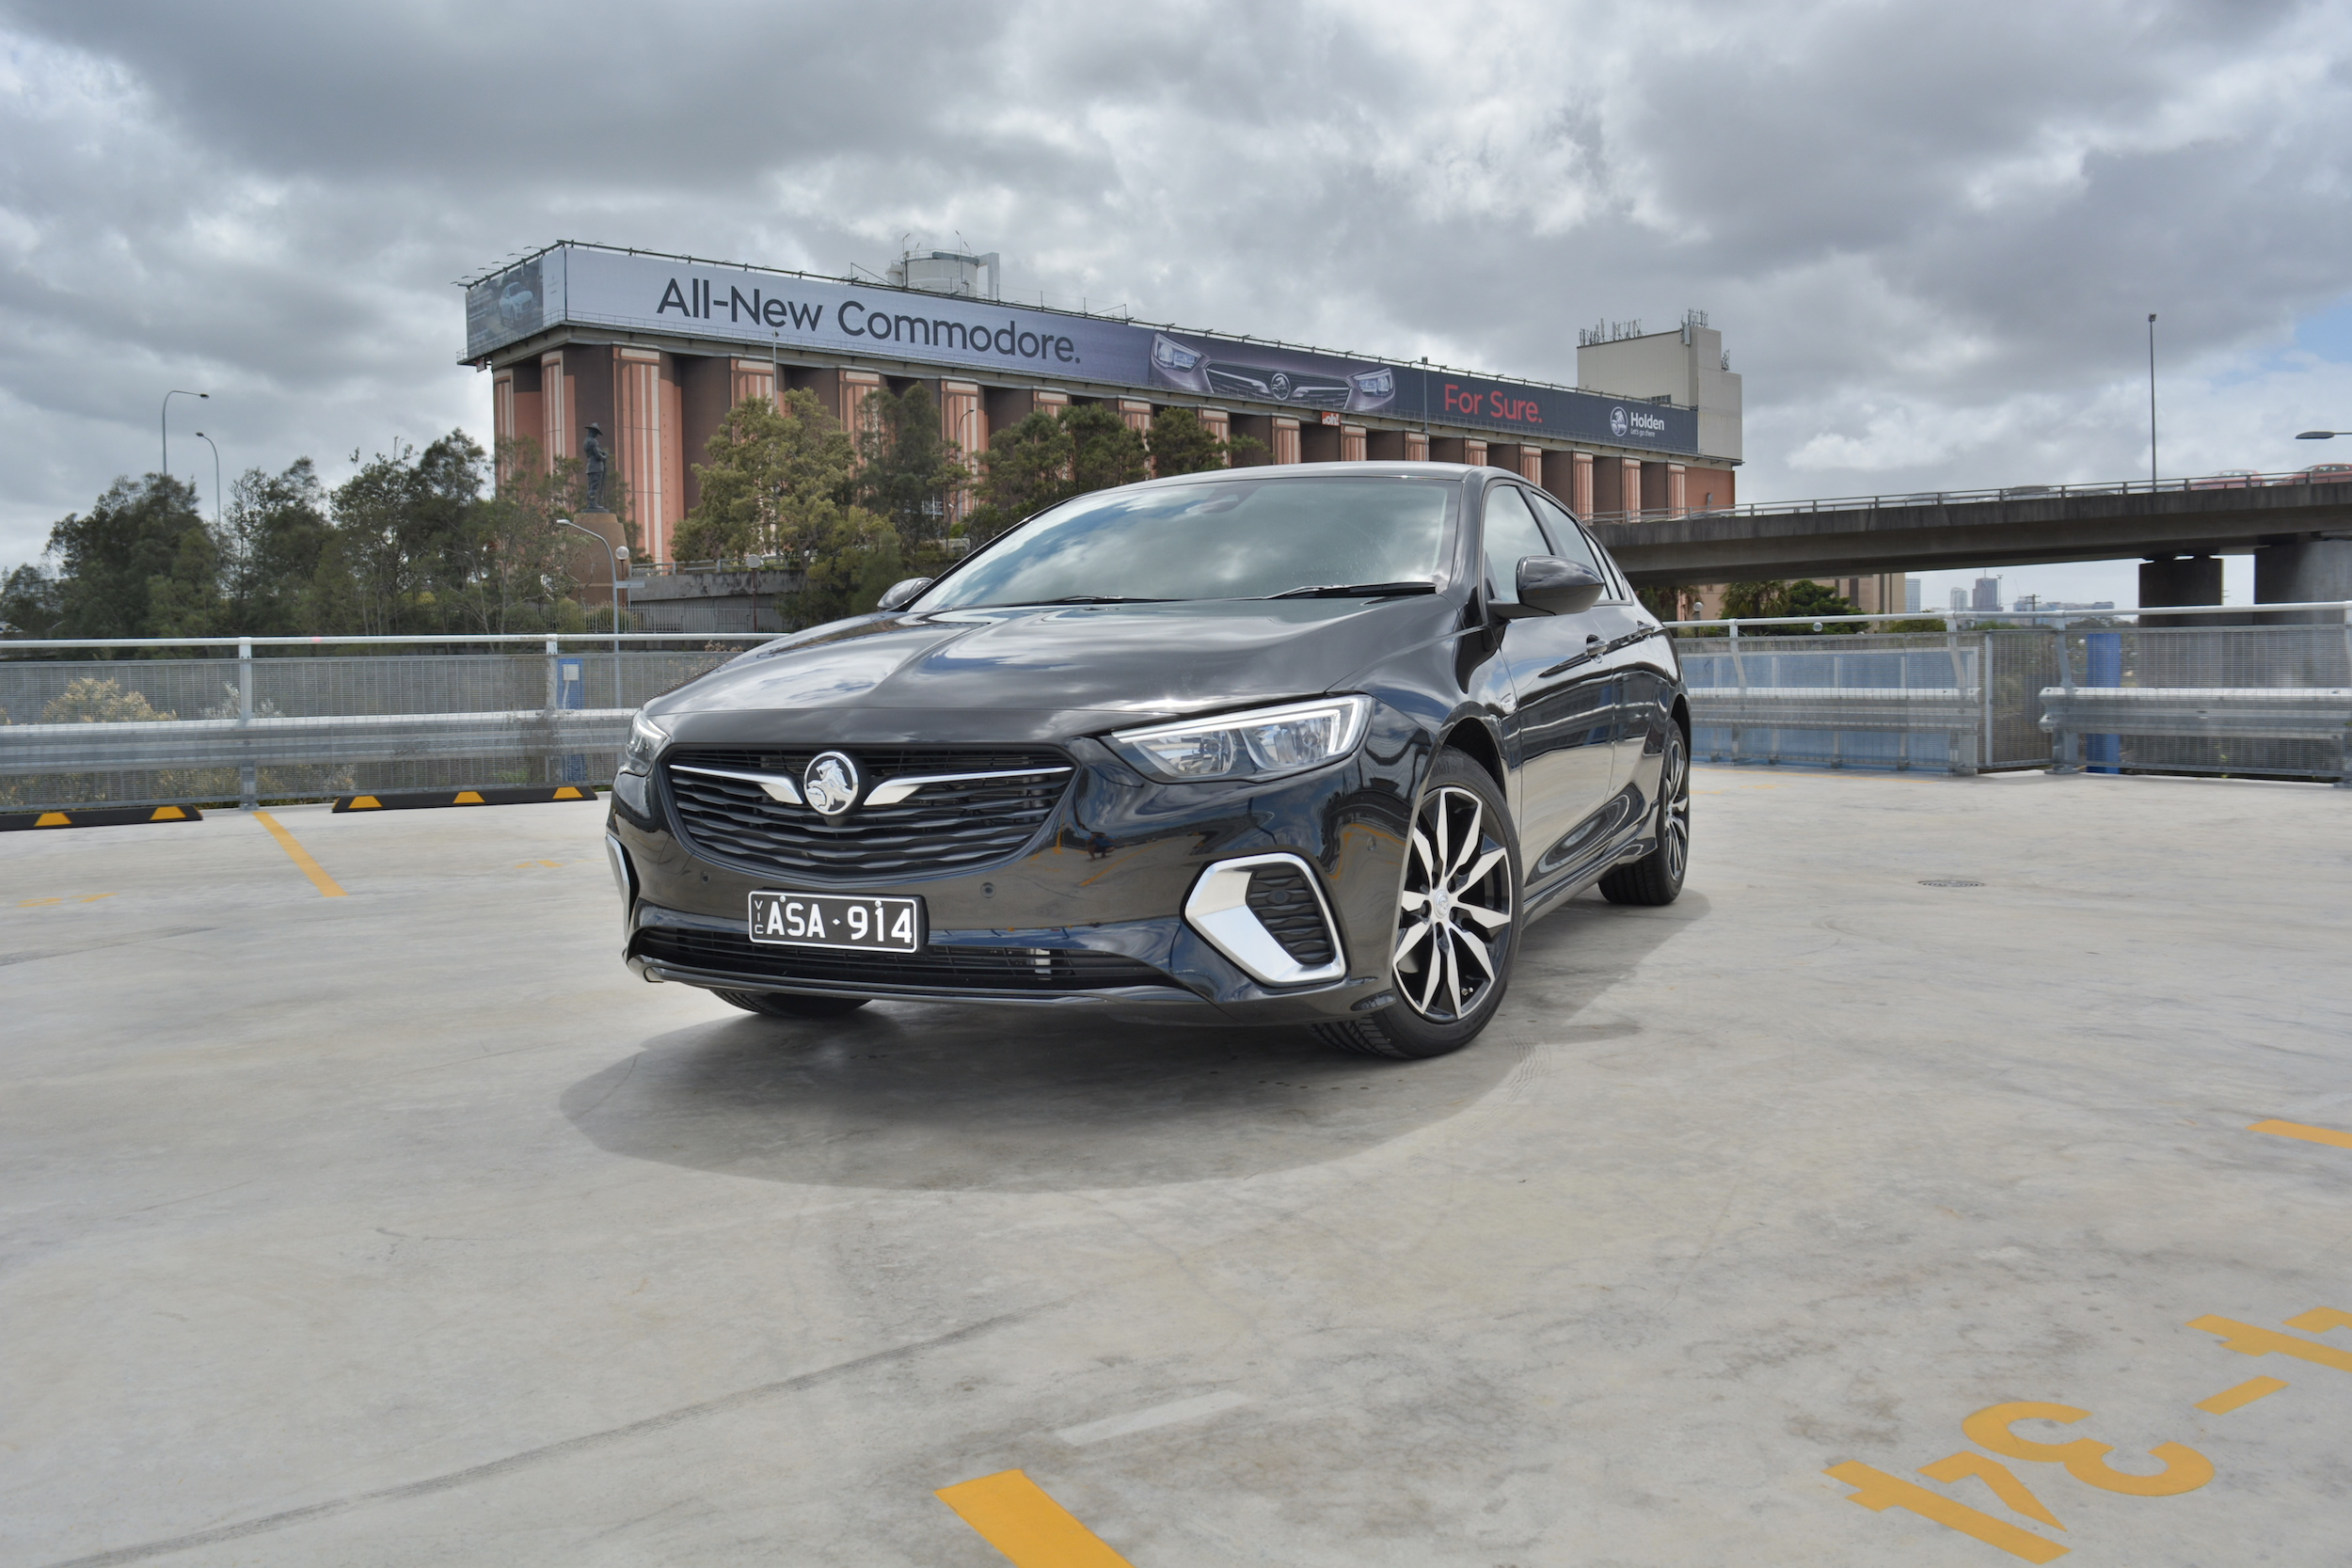 2018 Holden Commodore RS 2.0T new car review